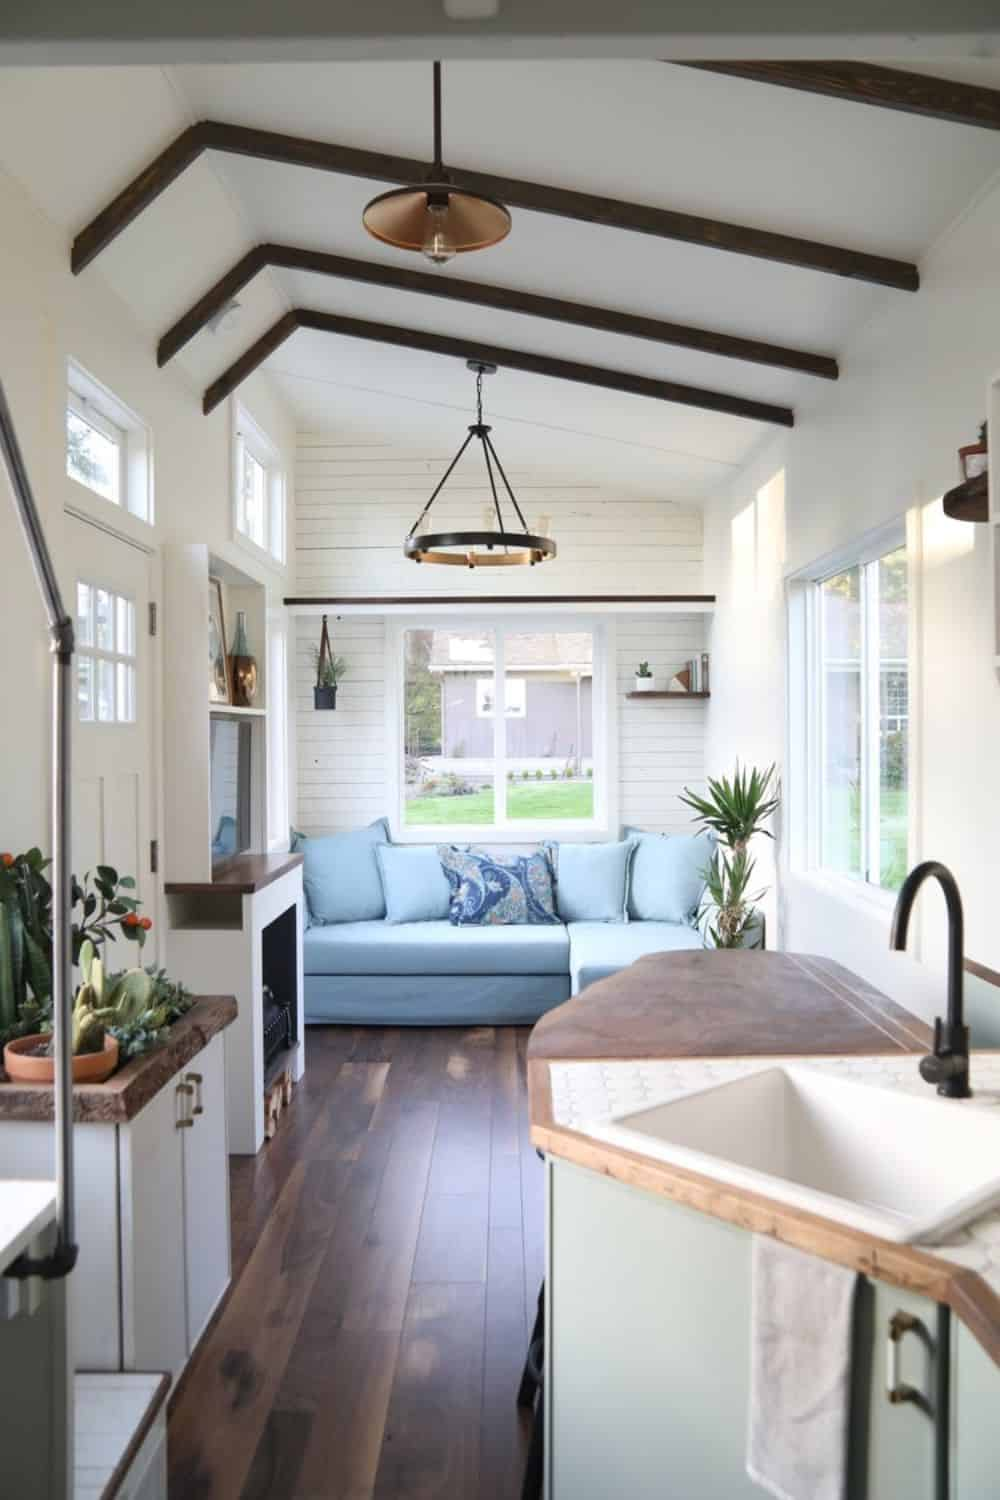 Tiny house with wood beamed ceiling, sectional sofa and dark wood flooring.